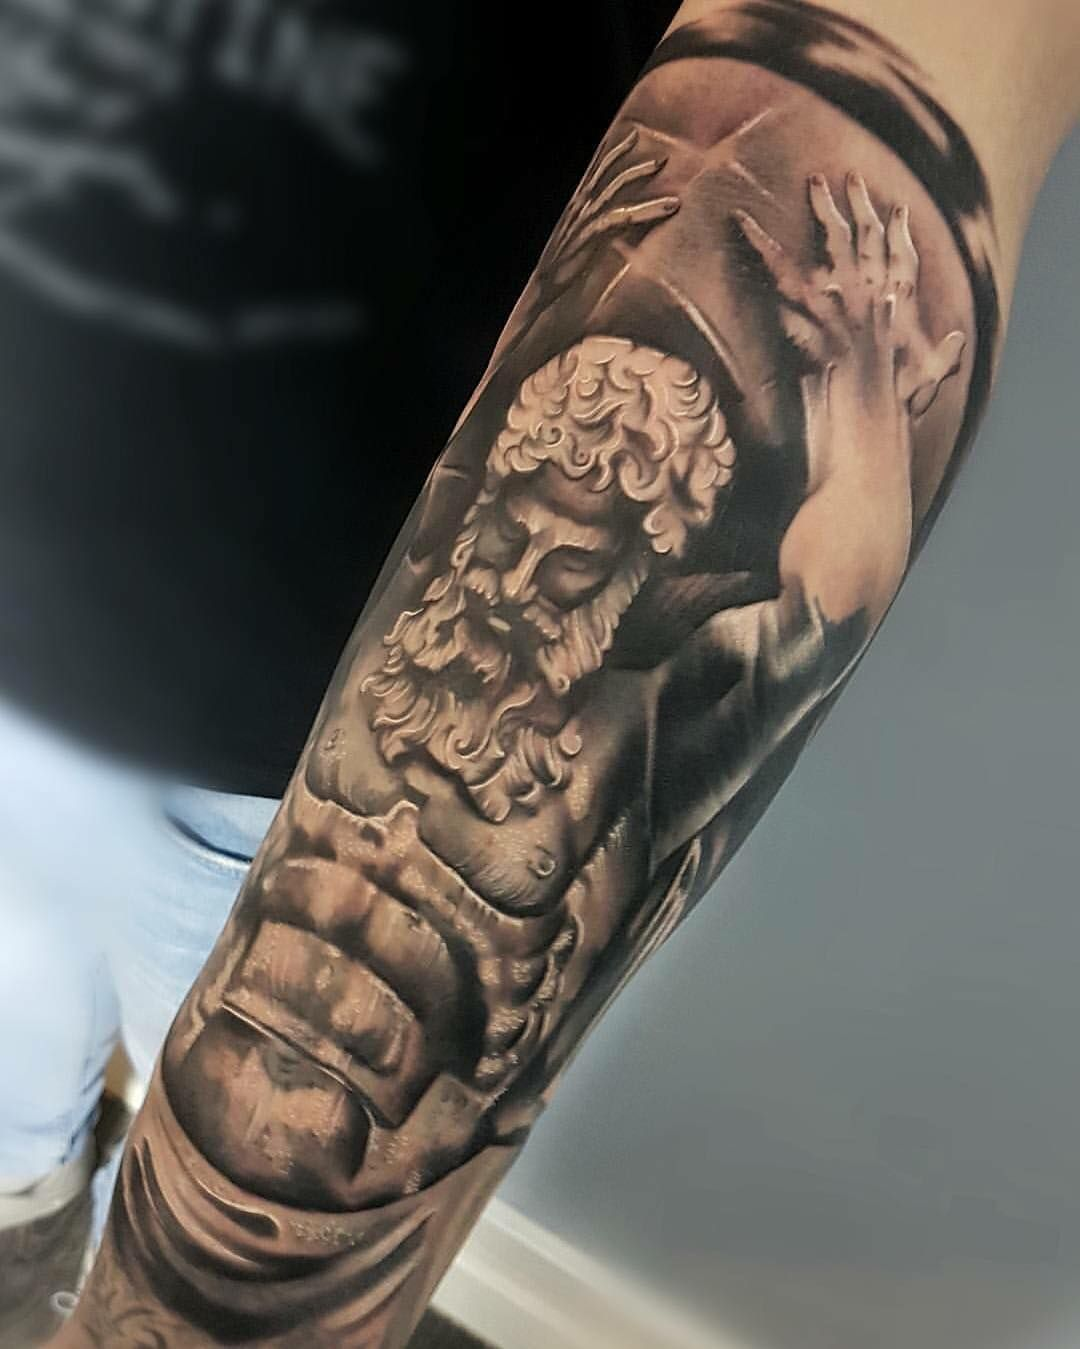 80 Creative Forearm Tattoo Ideas For Men And Women Check More At Http Tattoo Journal Com 30 Best For Cool Forearm Tattoos Forearm Tattoo Men Tattoos For Guys